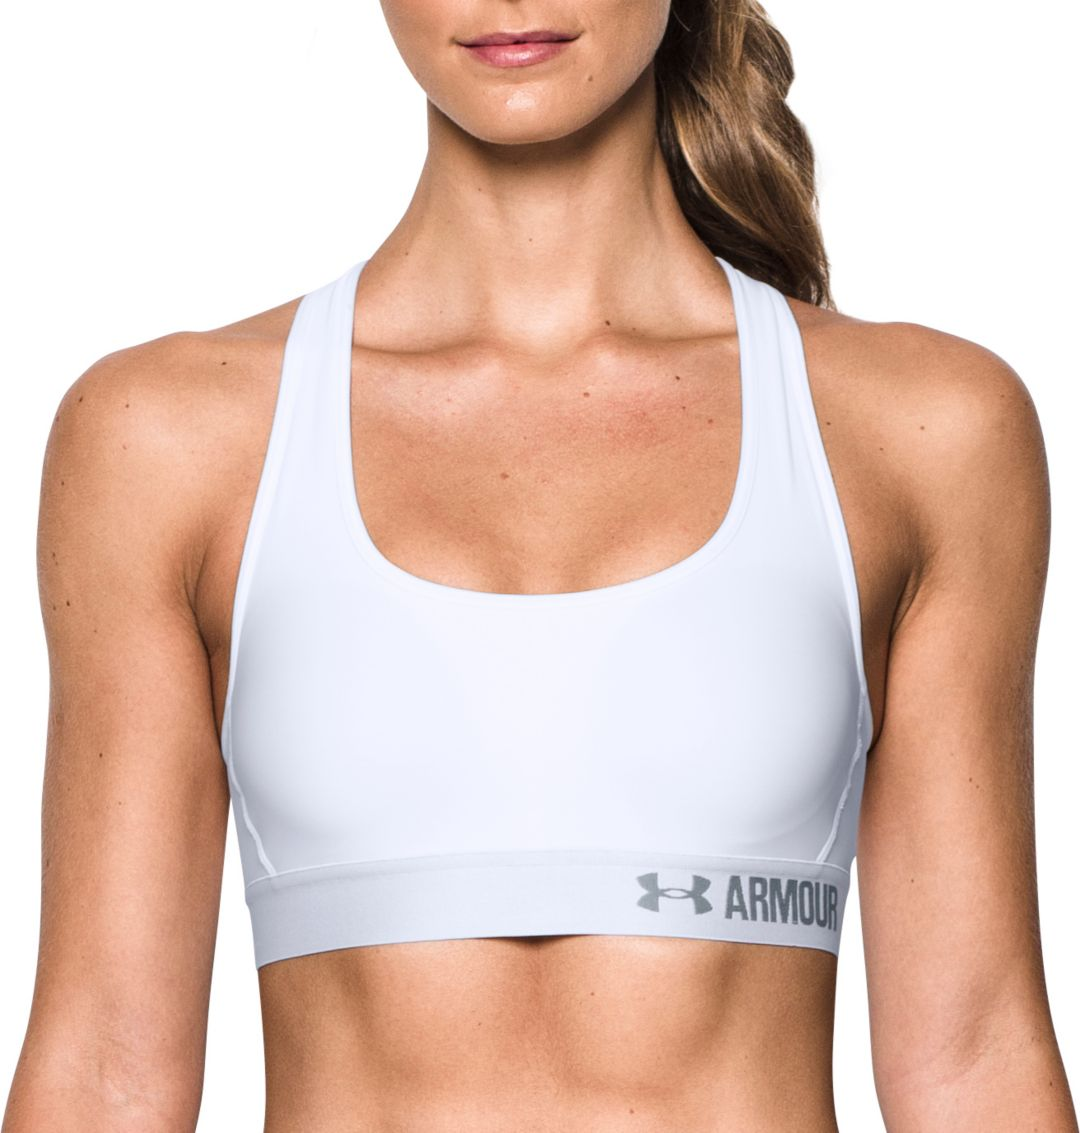 3389252c887 Under Armour Women's Armour Crossback Sports Bra